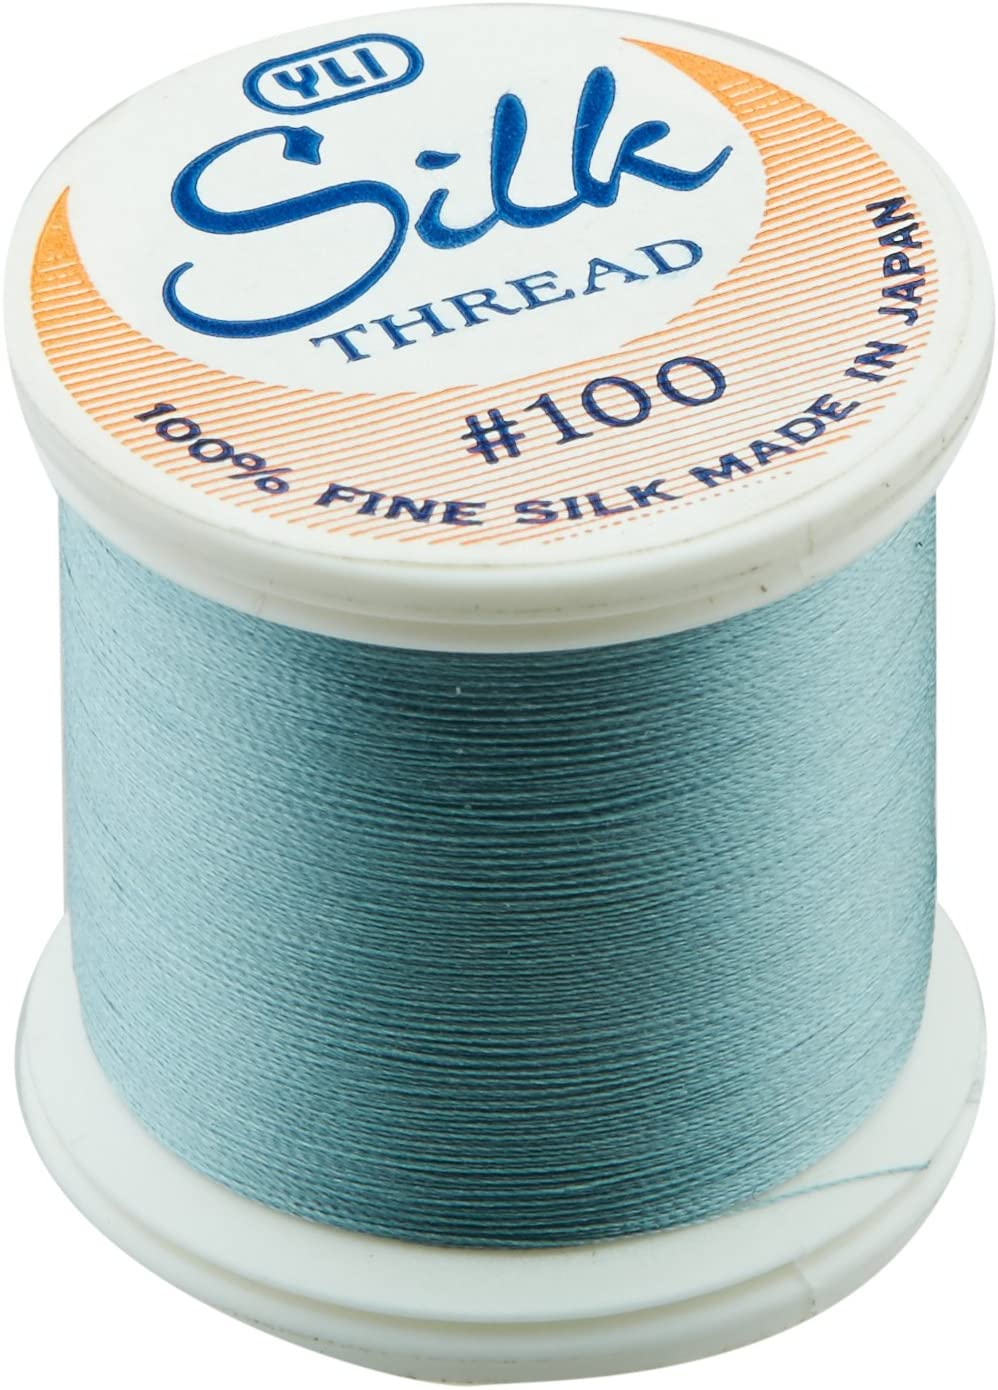 Silk Thread - Carribean Blue